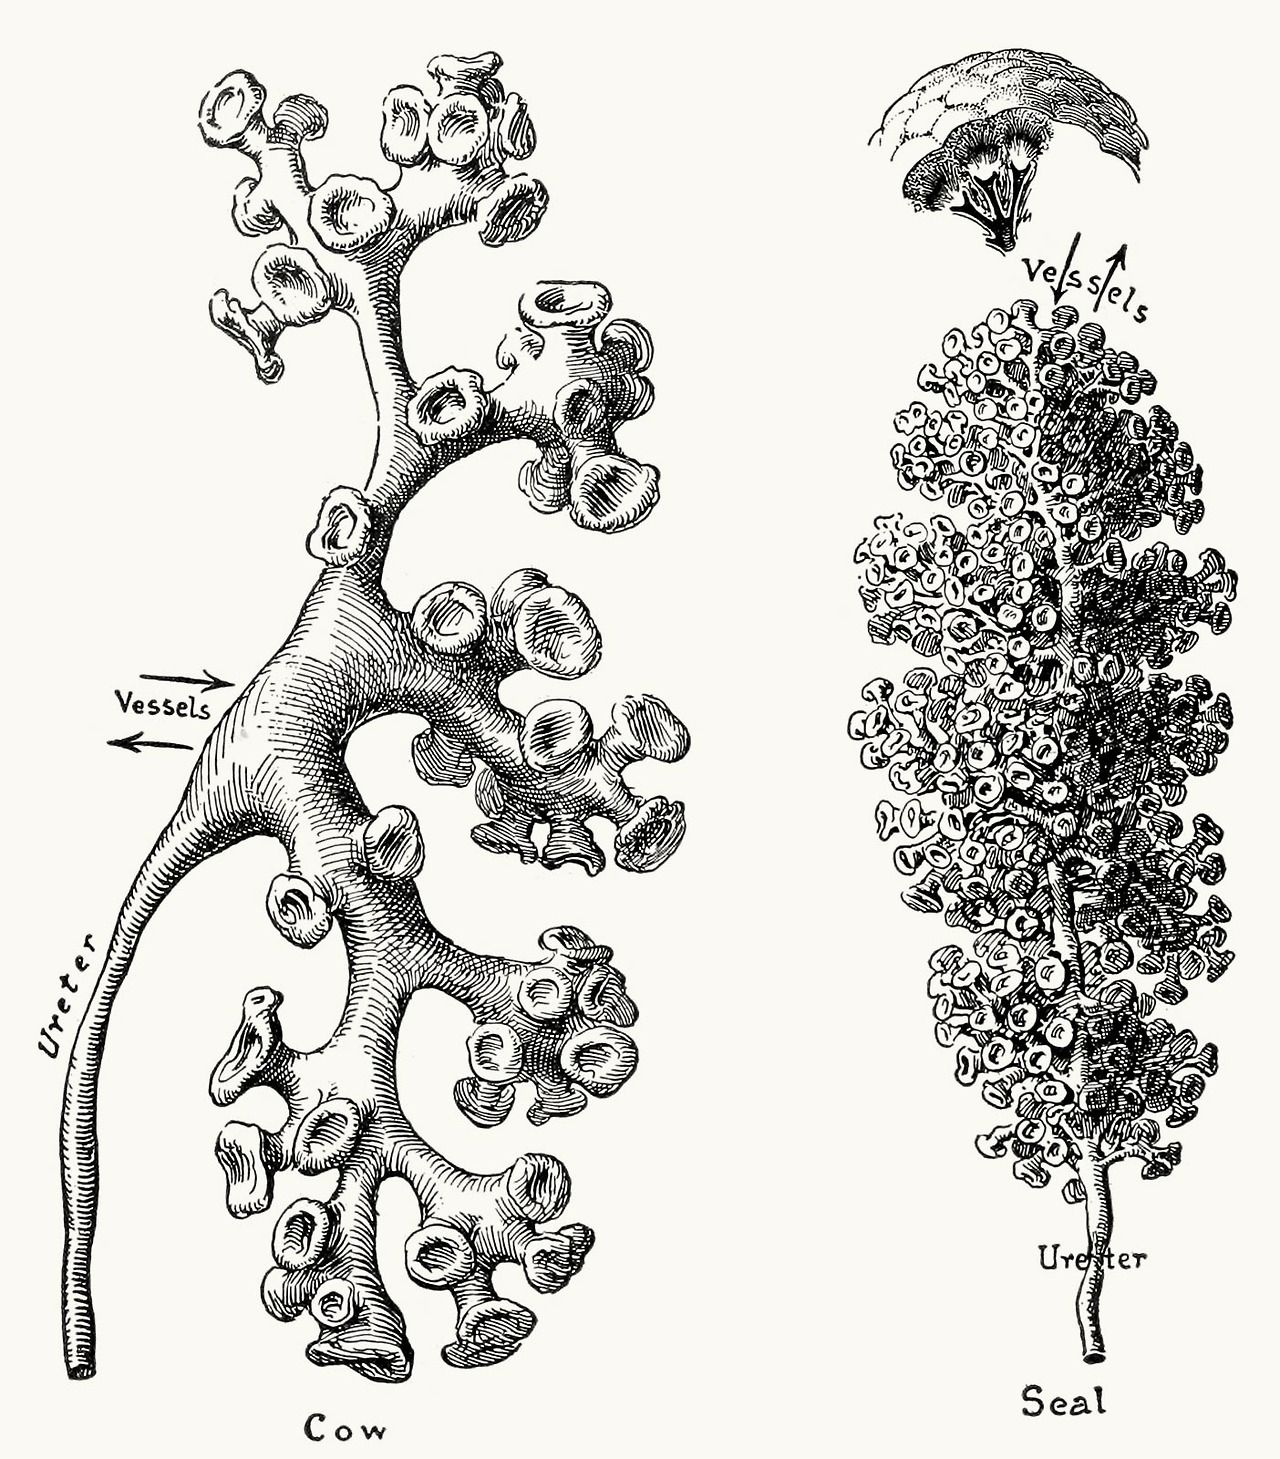 Diagrams Of Casts Of Renal Pelves And Calices In The Cow